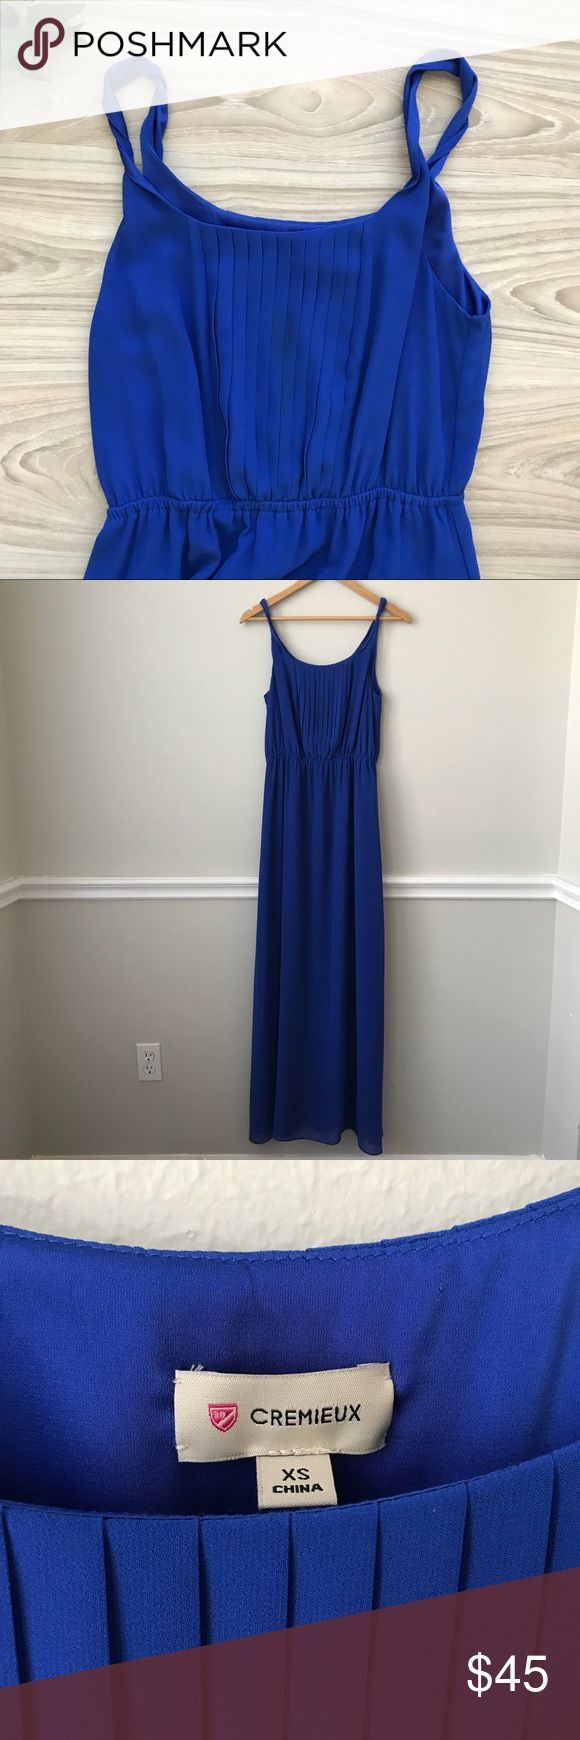 • Cremieux • Pleated Royal Blue Maxi Dress Sz Xs Gorgeous Cremieux Maxi Dress size Xs. This dress I'm in excellent condition with no signs of wear. It would be perfect for a vacation or even as a bridesmaids dress for a wedding. Shell-100% Polyester, Lining: 97% Polyester, 3% Spandex    Shoulder to Shoulder: 10 inches    Bust: 16.5 inches    Total Length: 56 inches    Daniel Cremieux Dresses Maxi